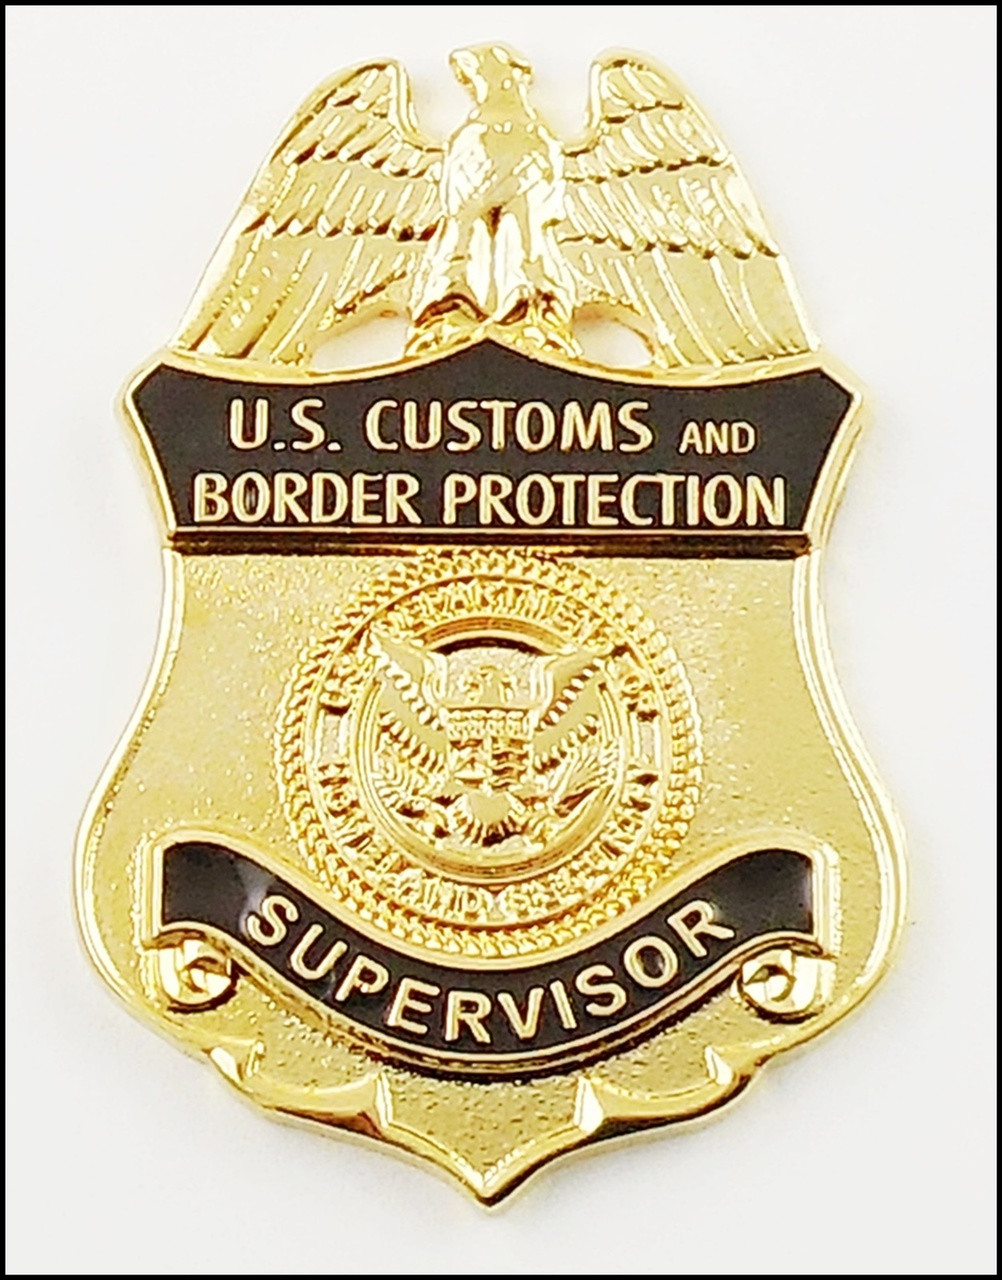 Customs and Border Protection Supervisor Mini Badge Magnet